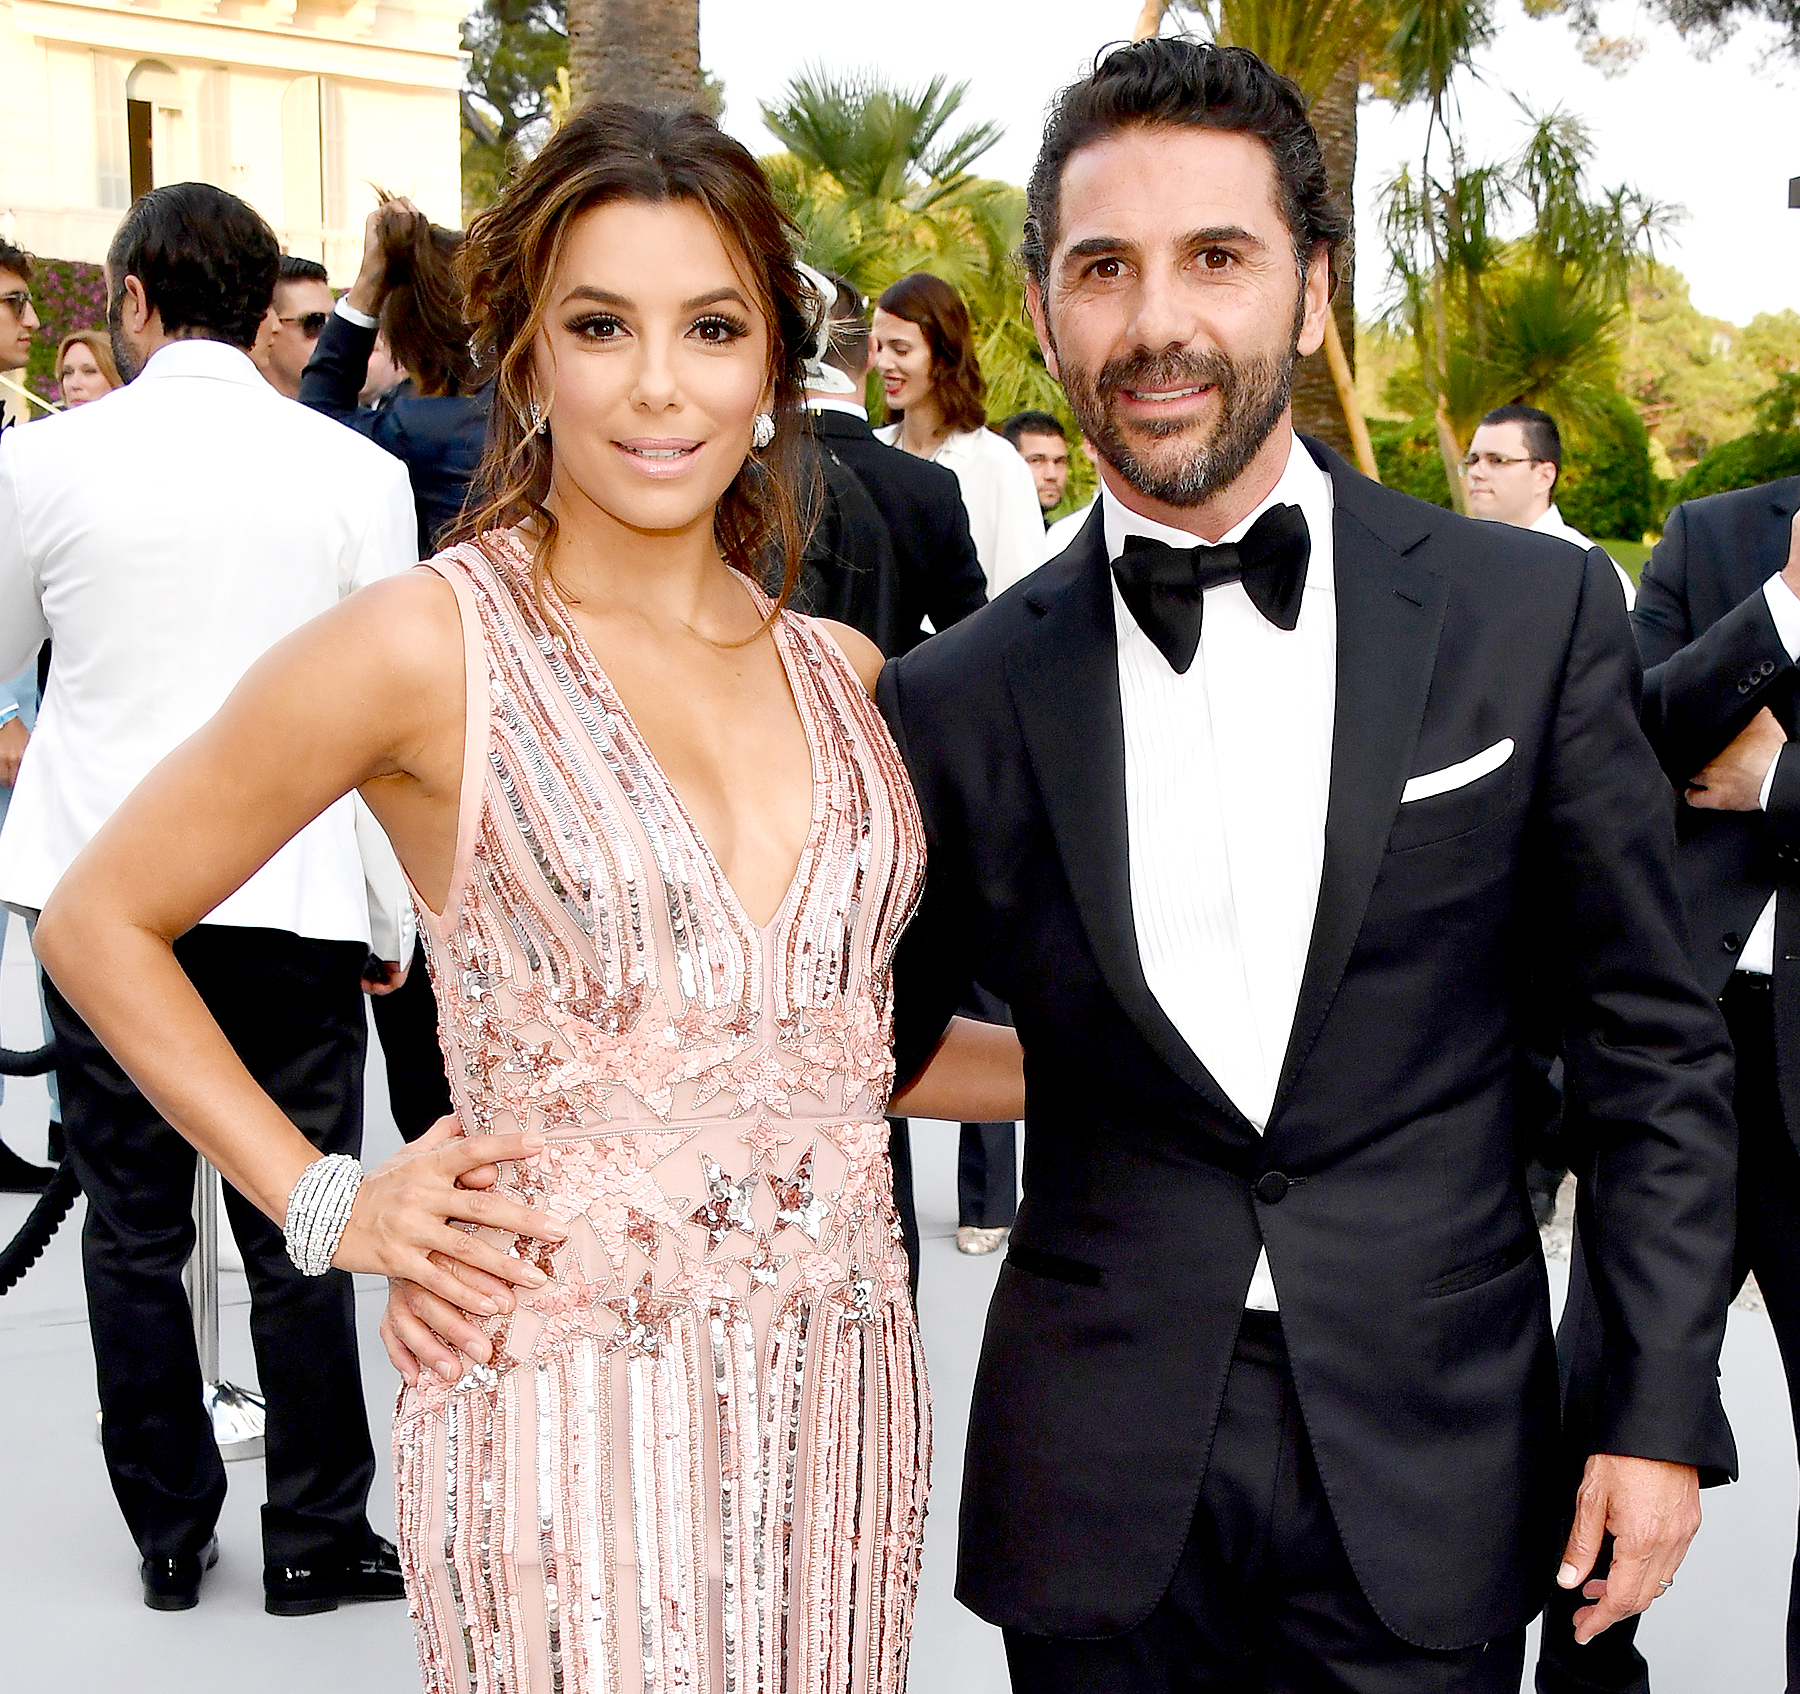 Eva Longoria pregnant with her first child